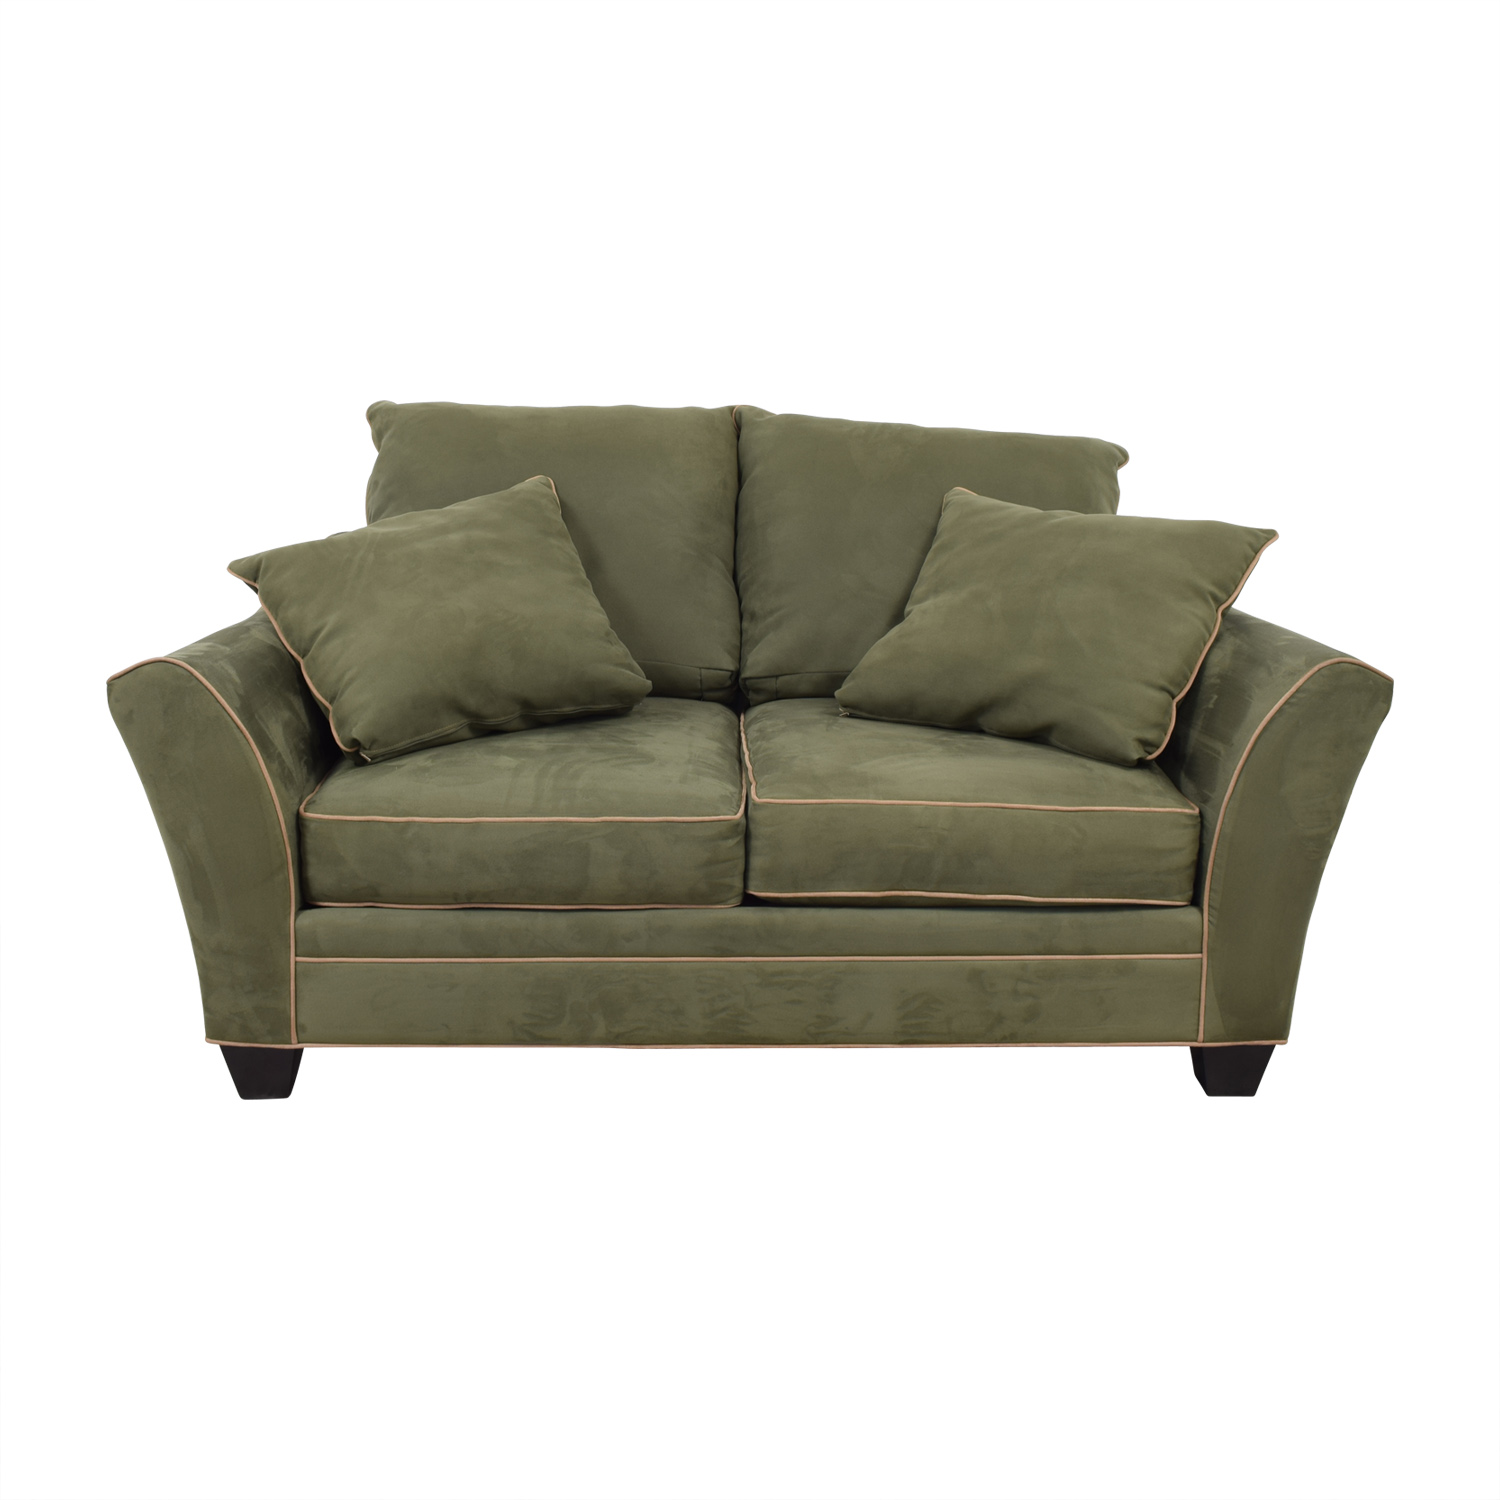 Raymour & Flanigan Raymour & Flanigan Briarwood Brown Two-Cushion Loveseat coupon